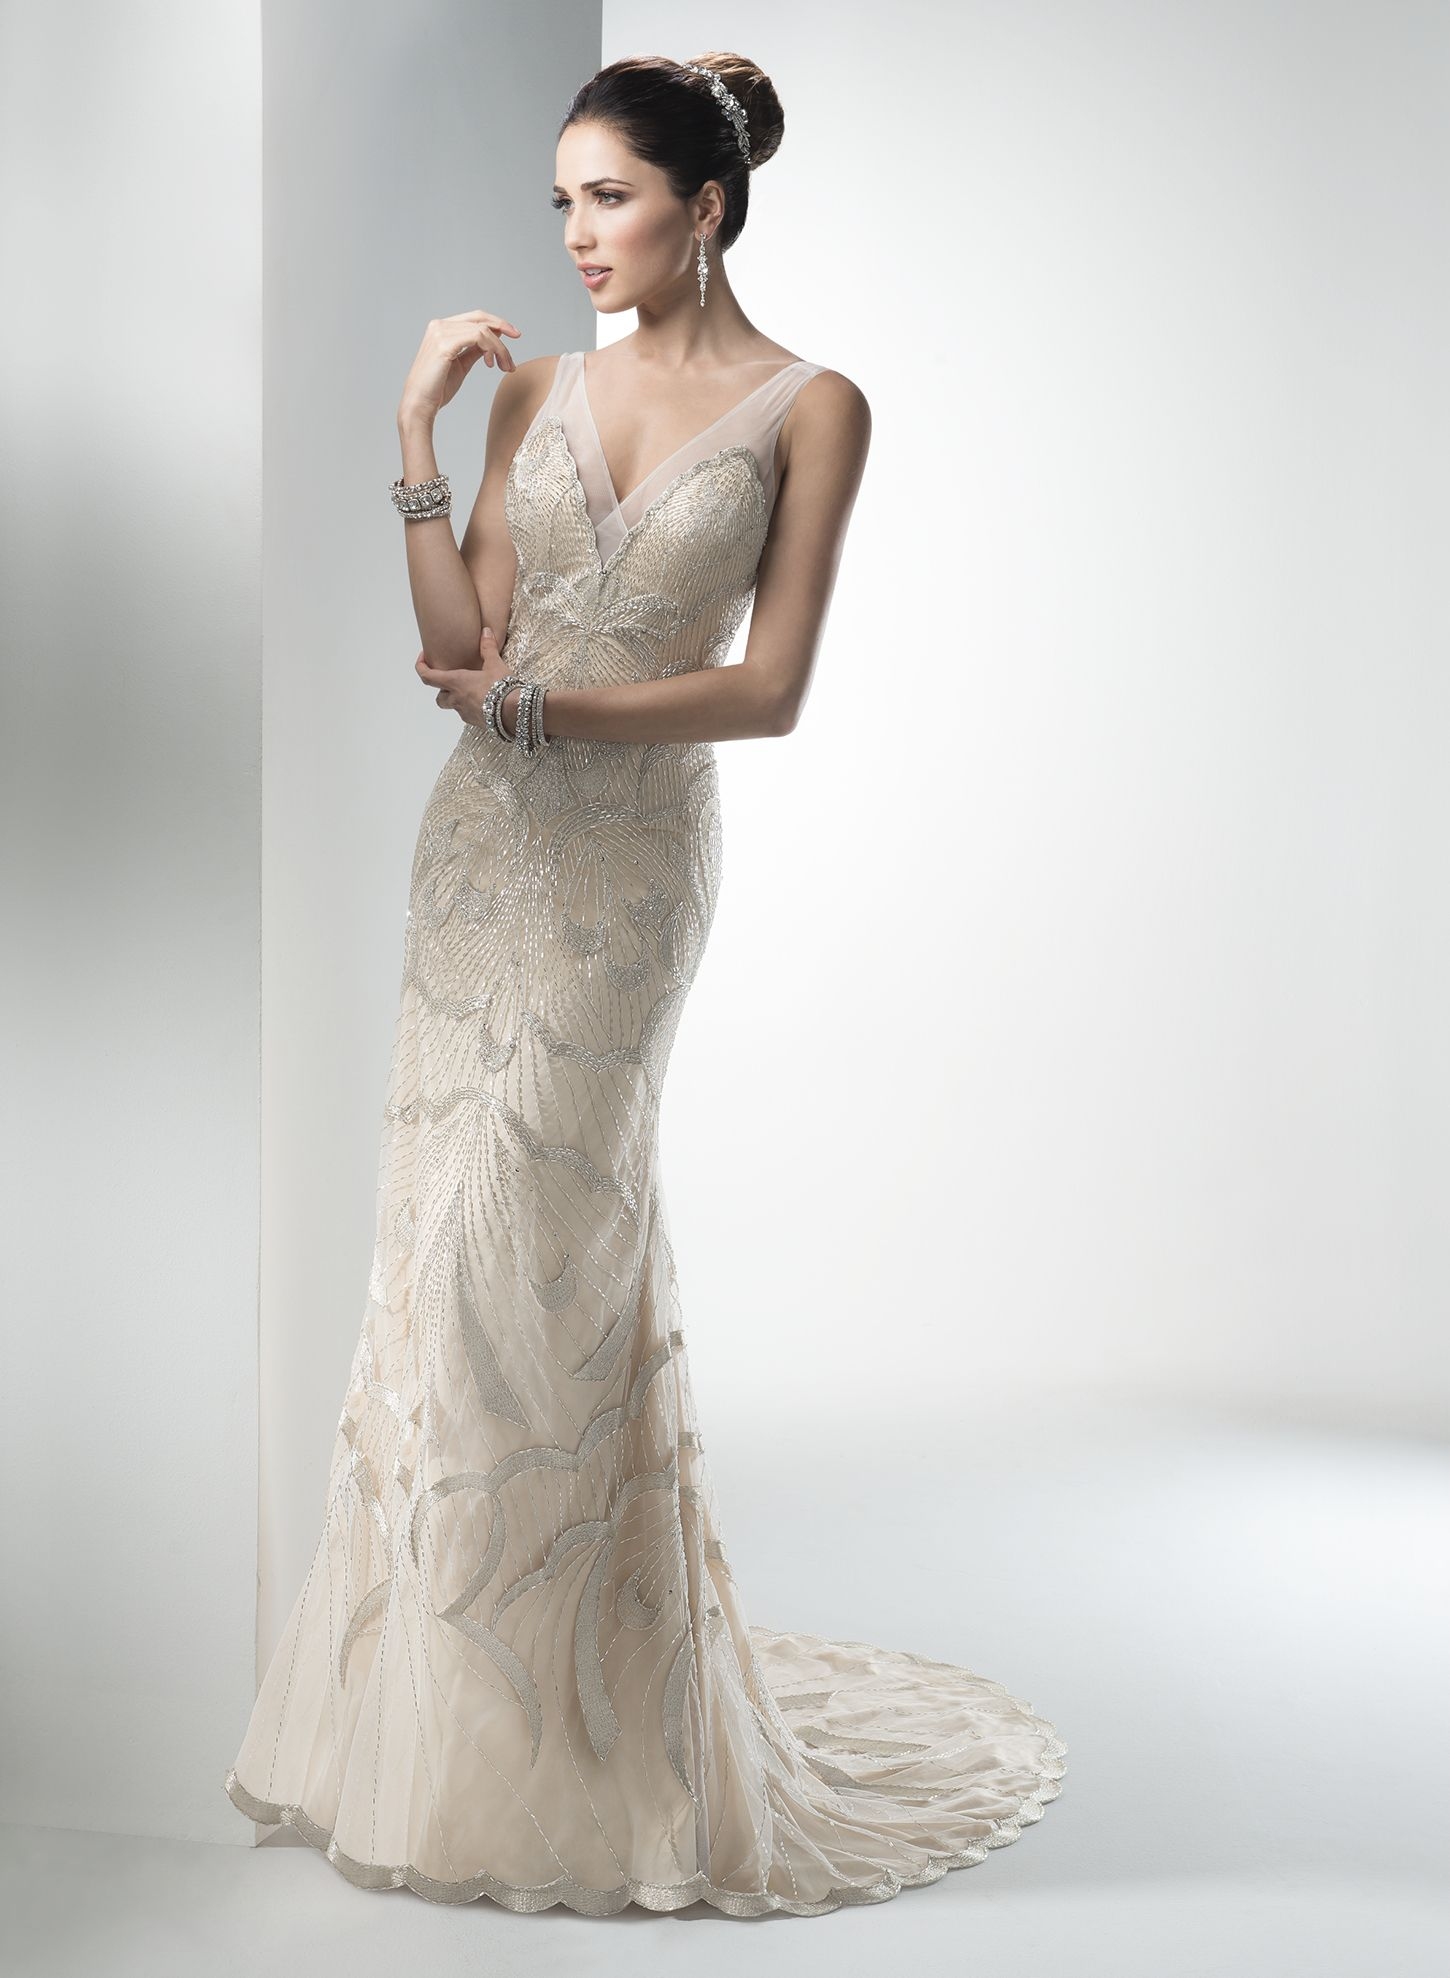 Gianna Marie By Maggie Sottero Wedding Dresses Designer Metallic